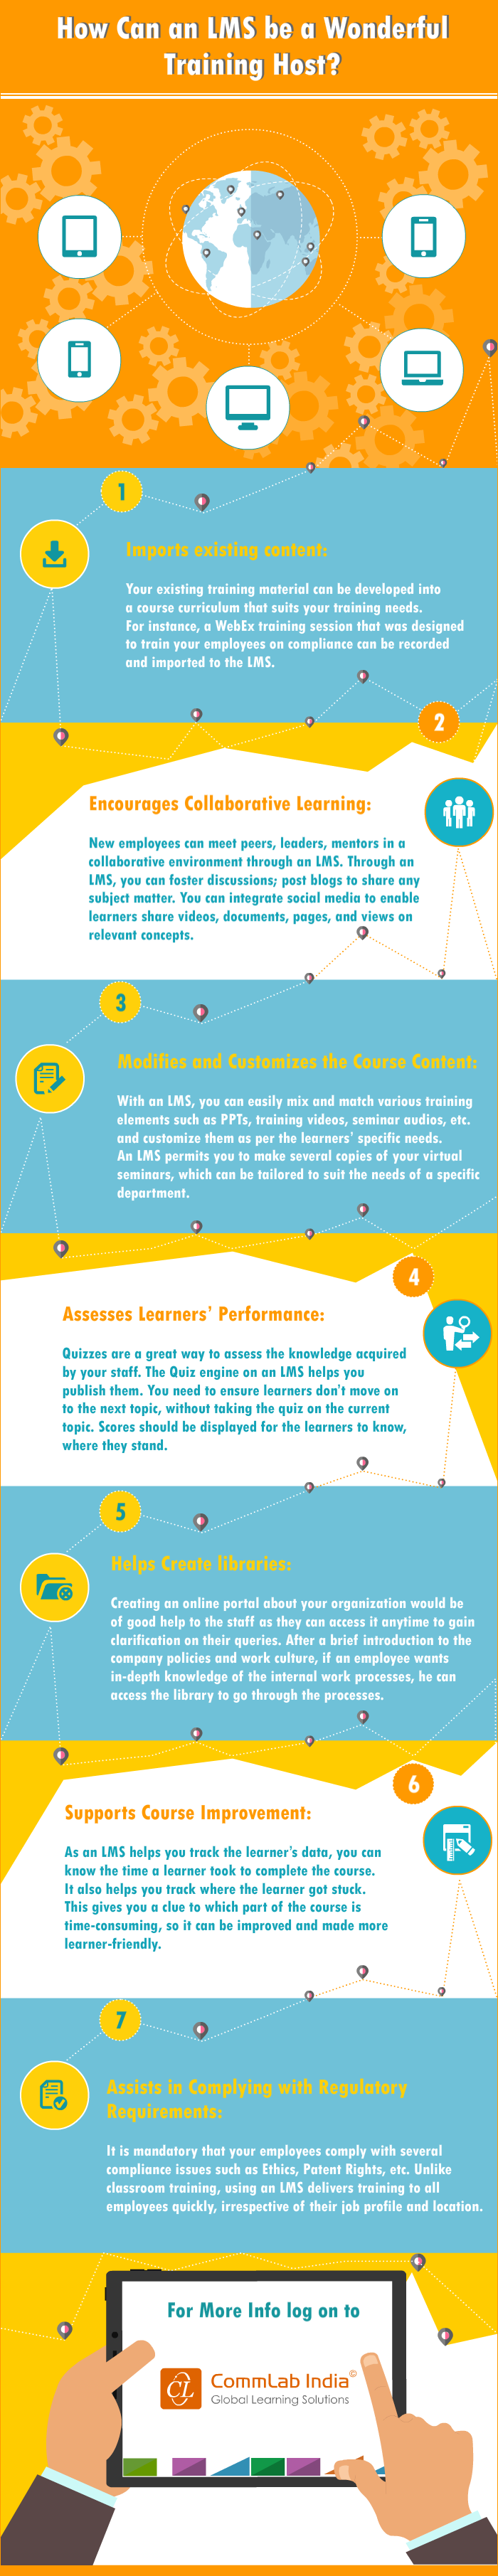 How Can an LMS be a Wonderful Training Host [Infographic]